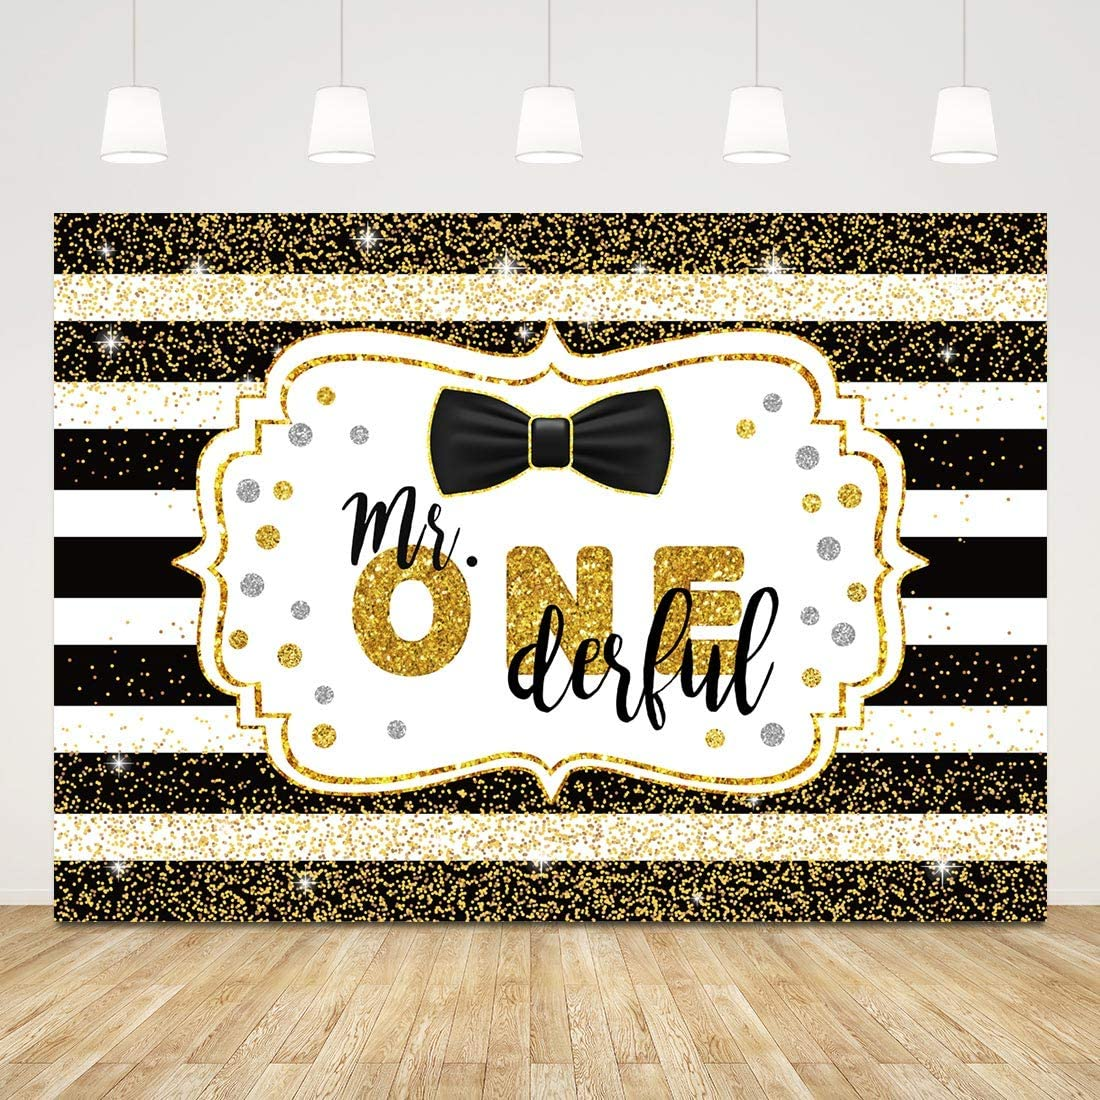 Happy 1st Birthday Backdrop Boy Gold Glitter Stripe First Birthday Background 7x5ft Mr. Onederful Backdrop for Birthday Party 1st Birthday Photo Booth Props Baby Shower Banner Cake Table Decors